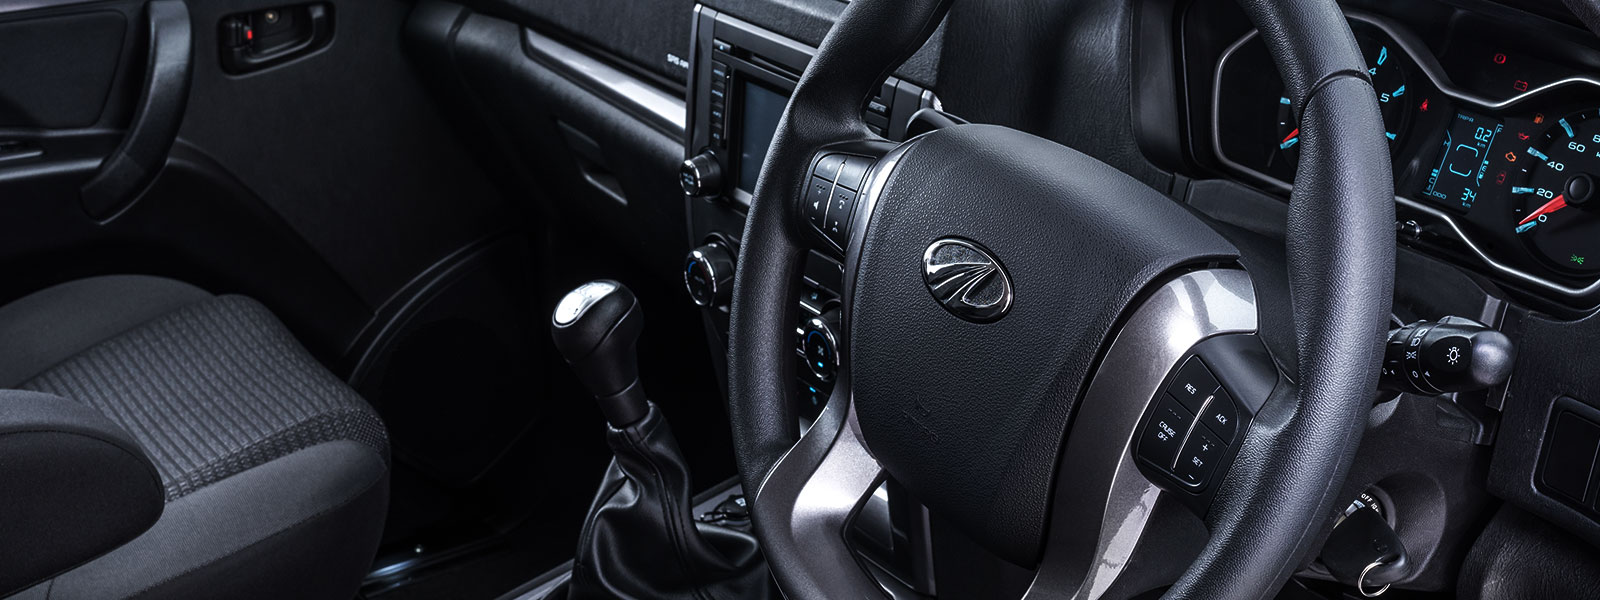 Steering mounted phone controls*